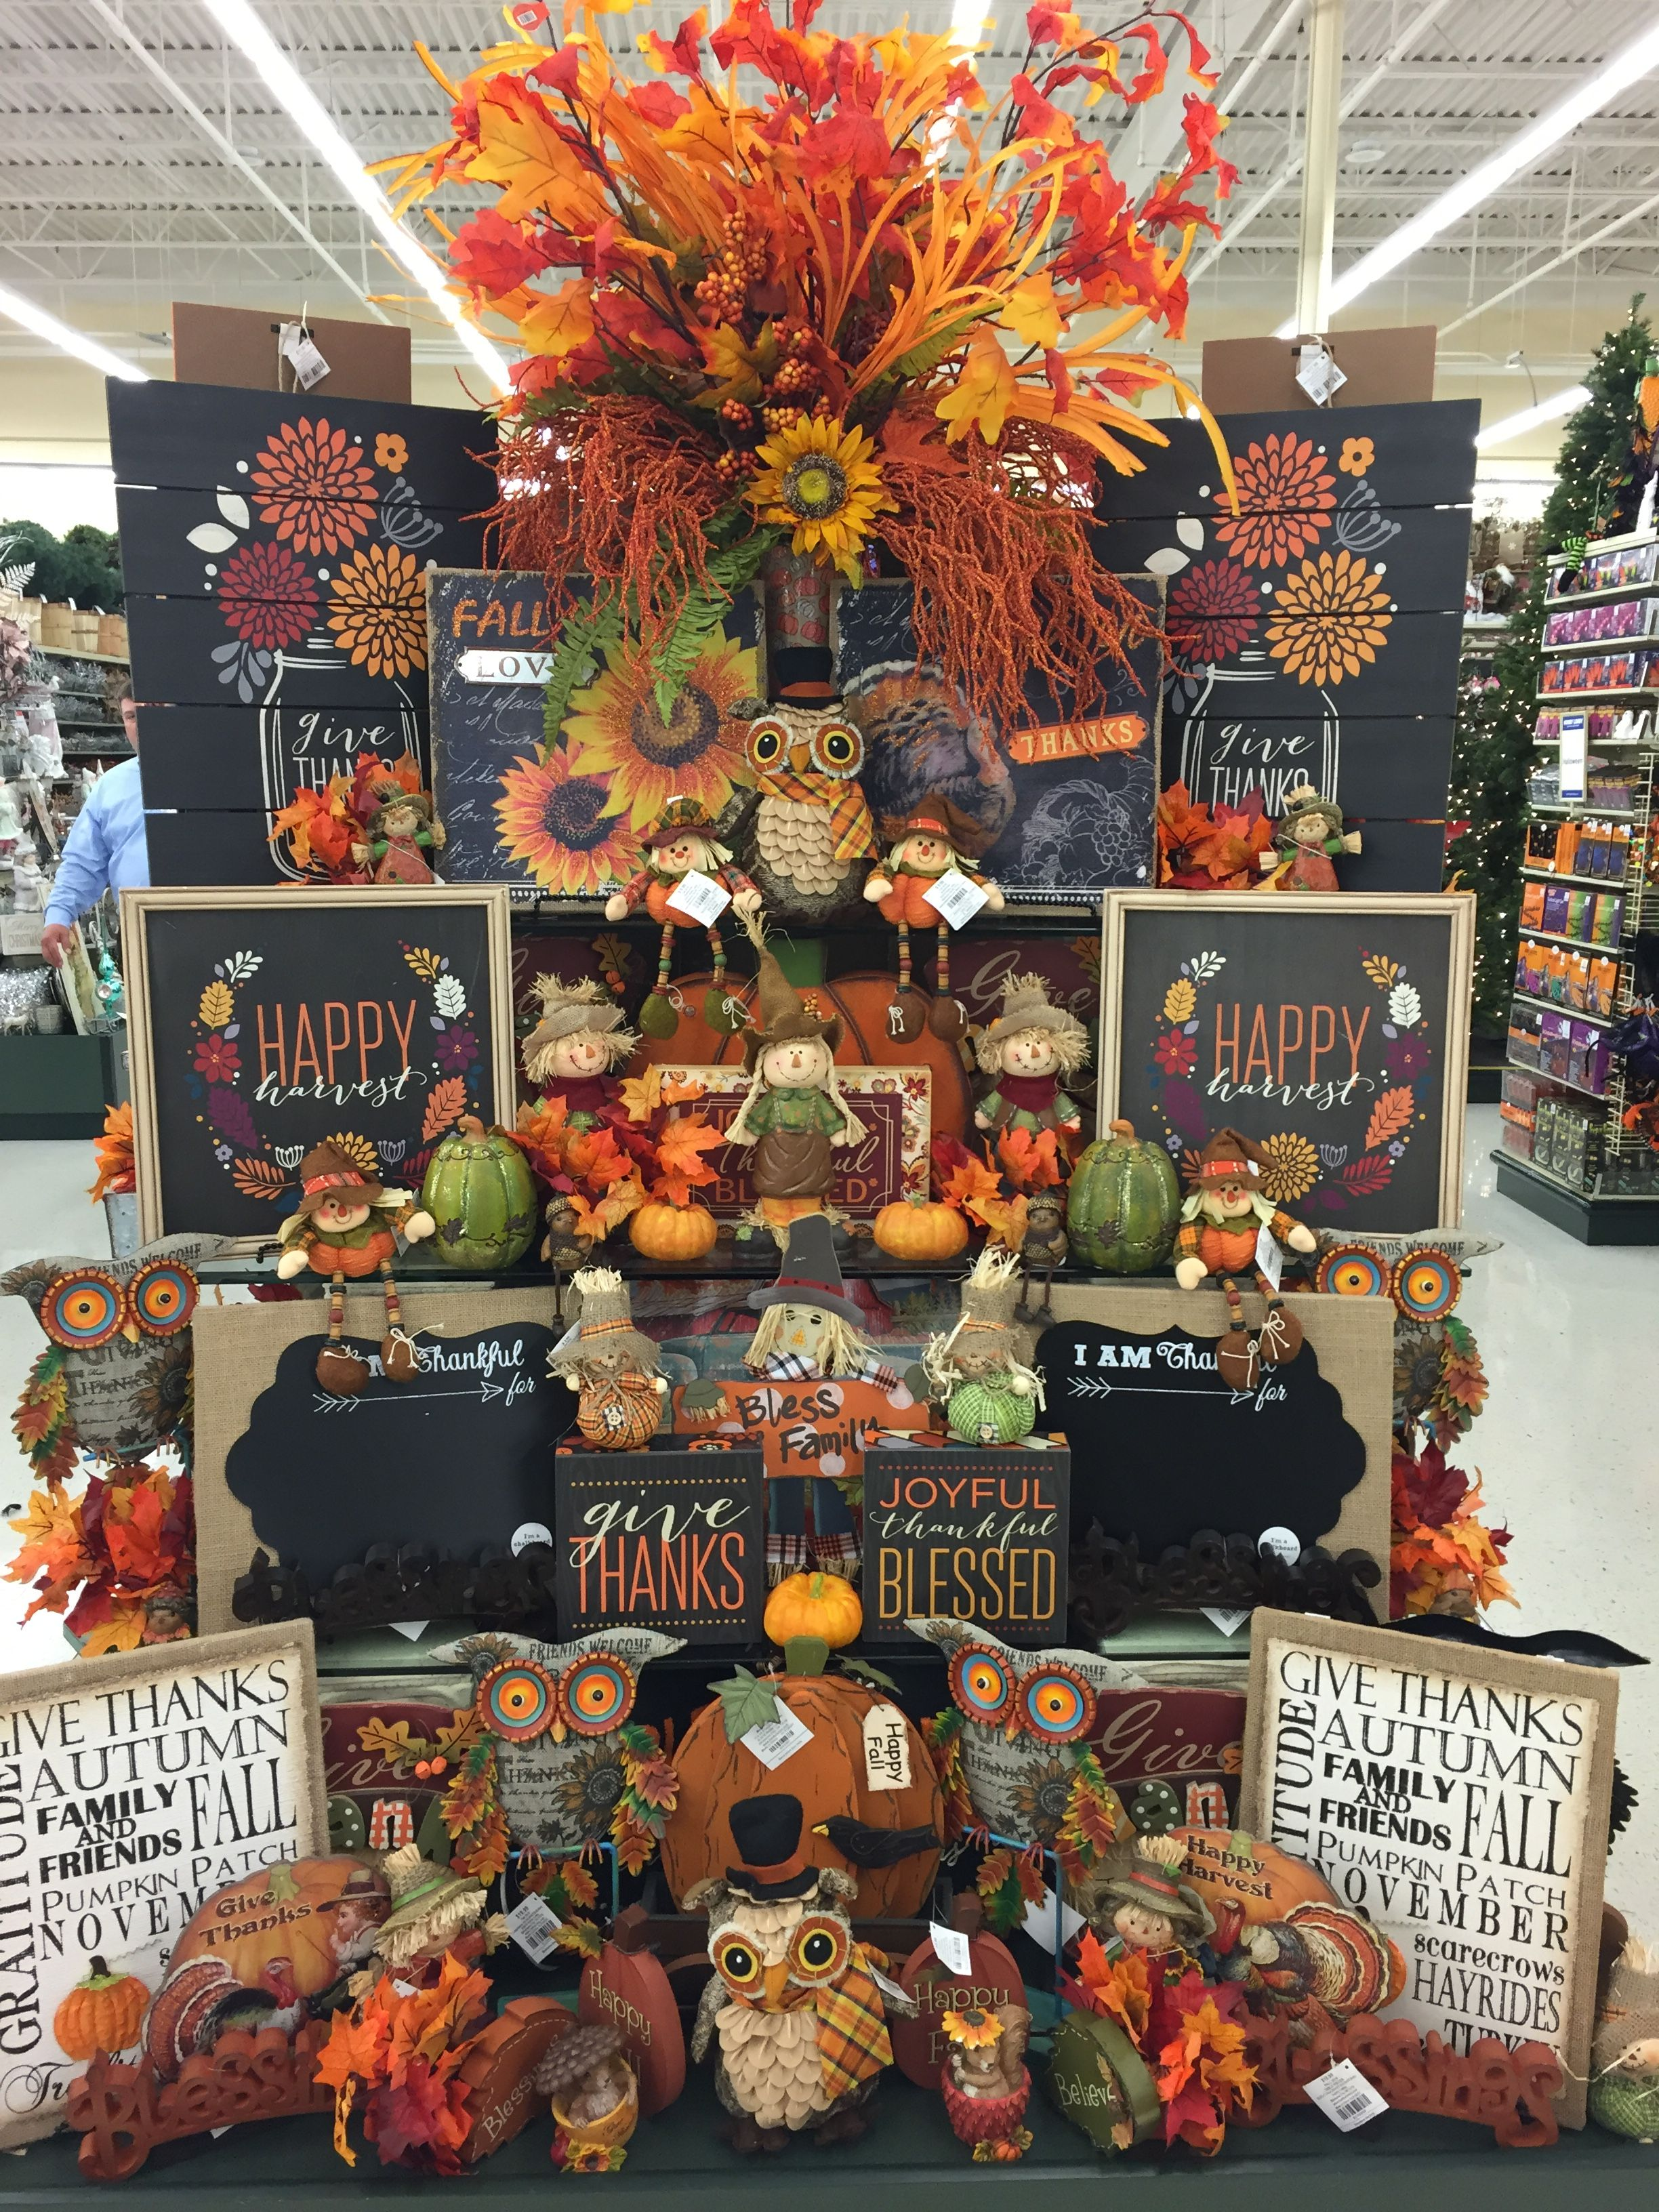 Pin by Natalie Duckworth Wright on Hobby Lobby Fall